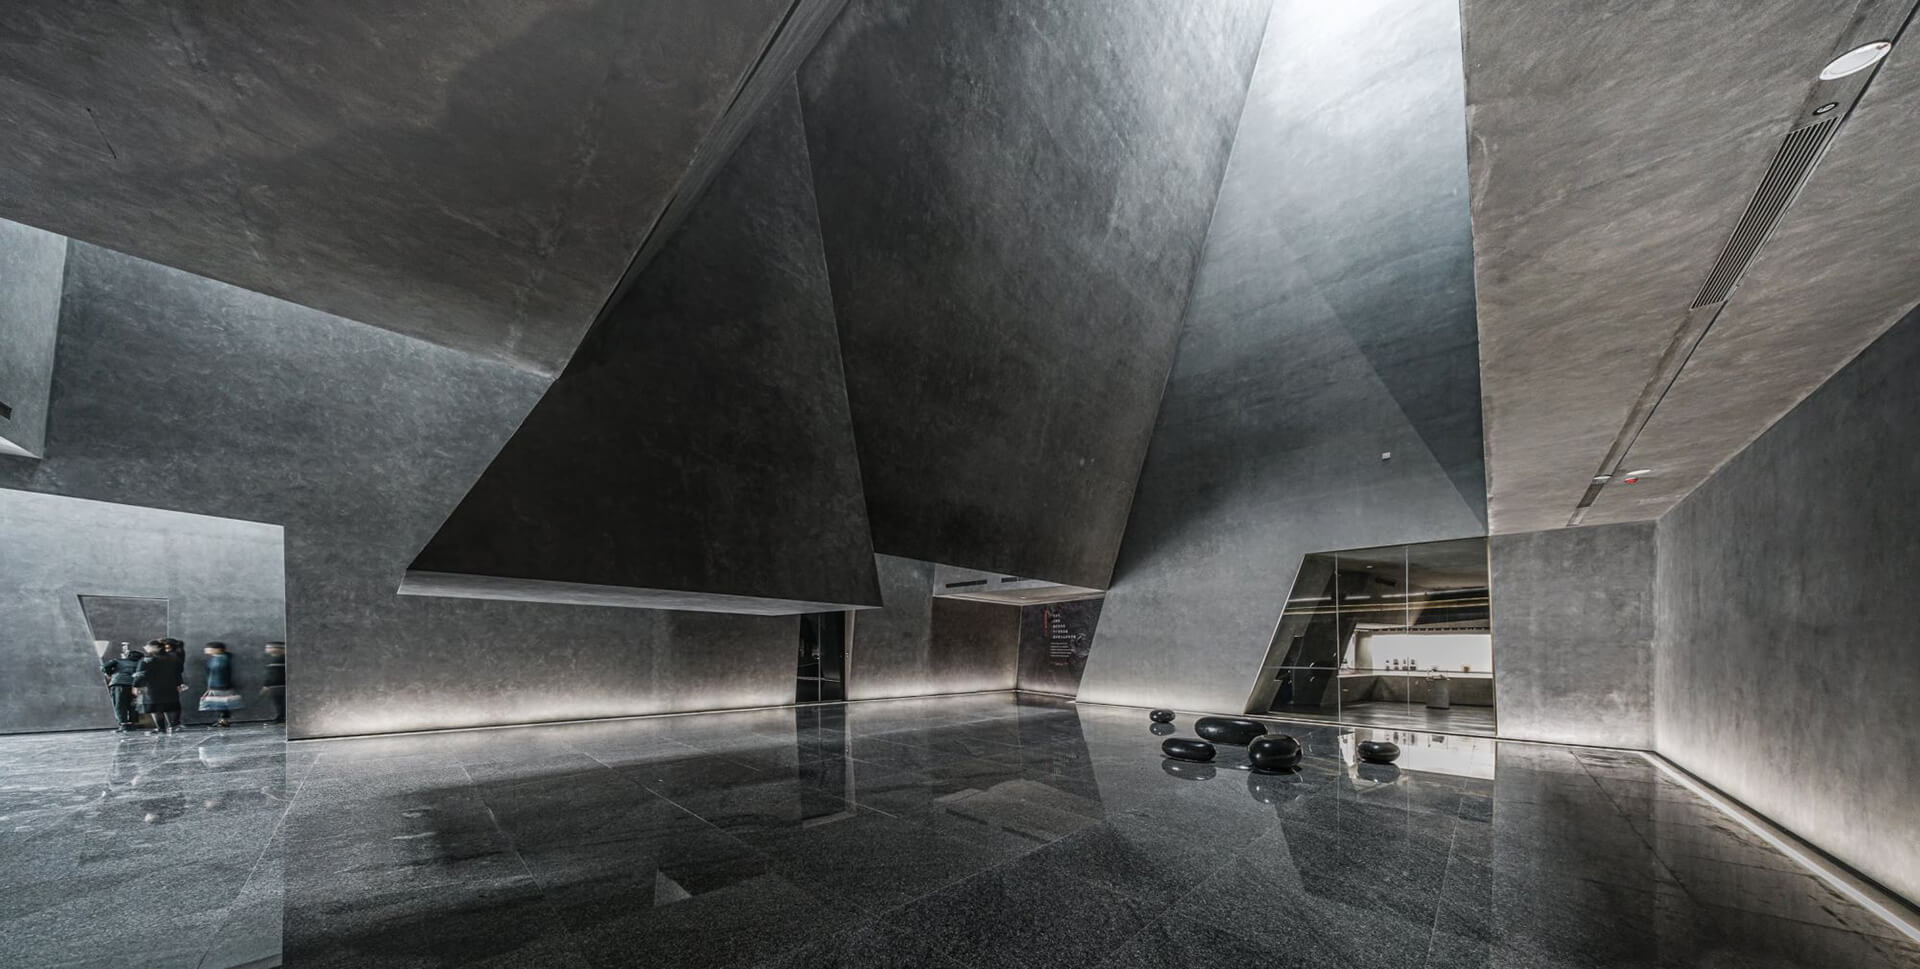 Inside the Yingliang Stone Natural History Museum | Atelier Alter | Beijing | STIRworld